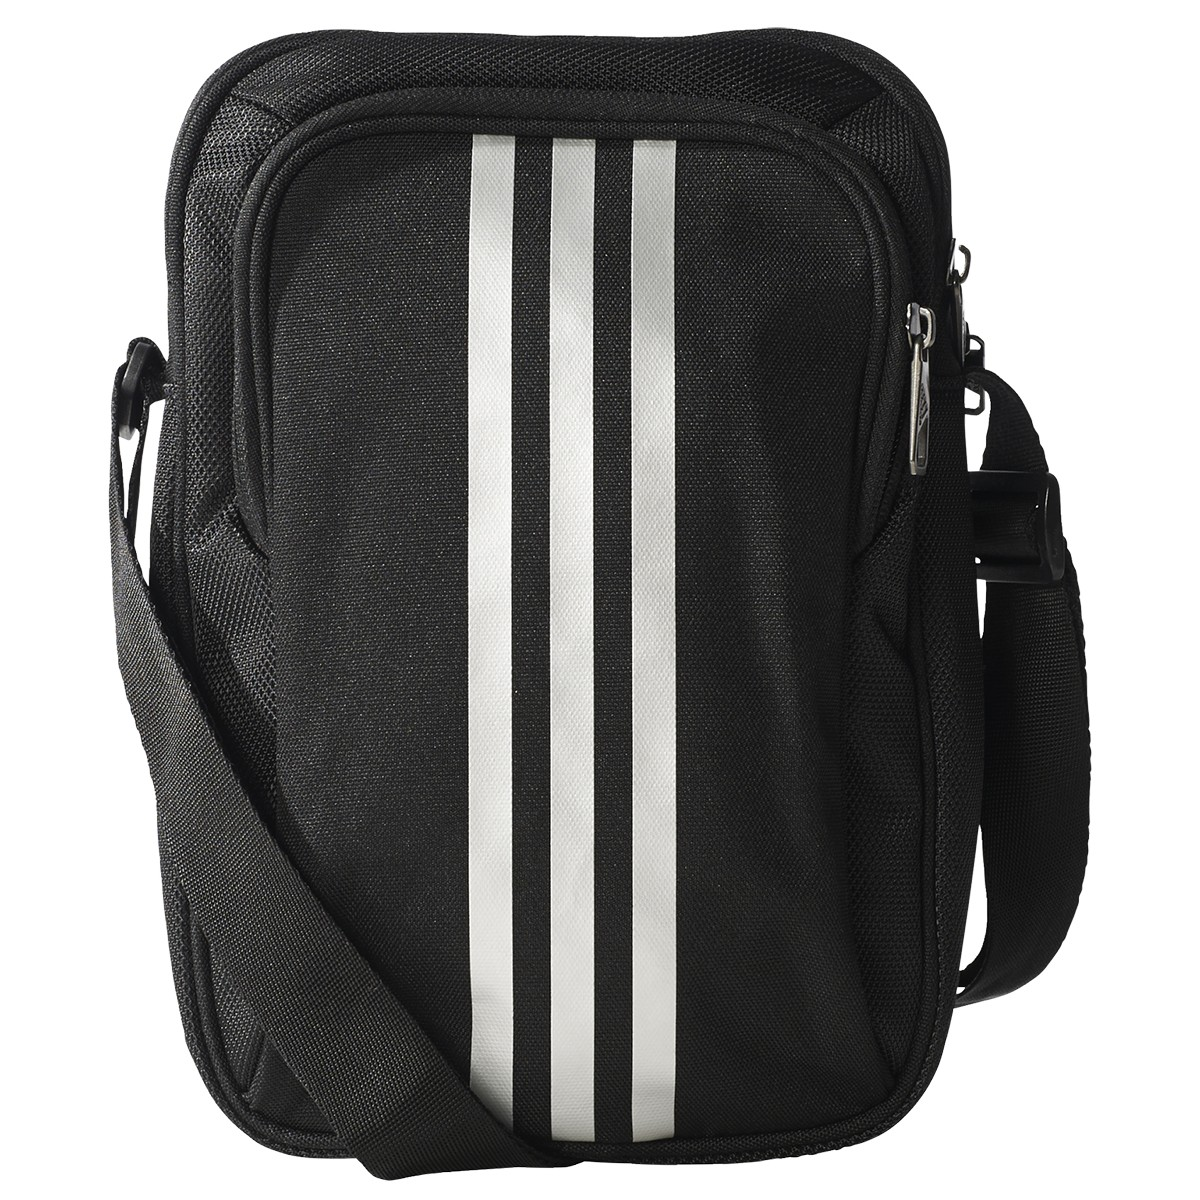 ADIDAS PERFORMANCE SHOULDER BAG